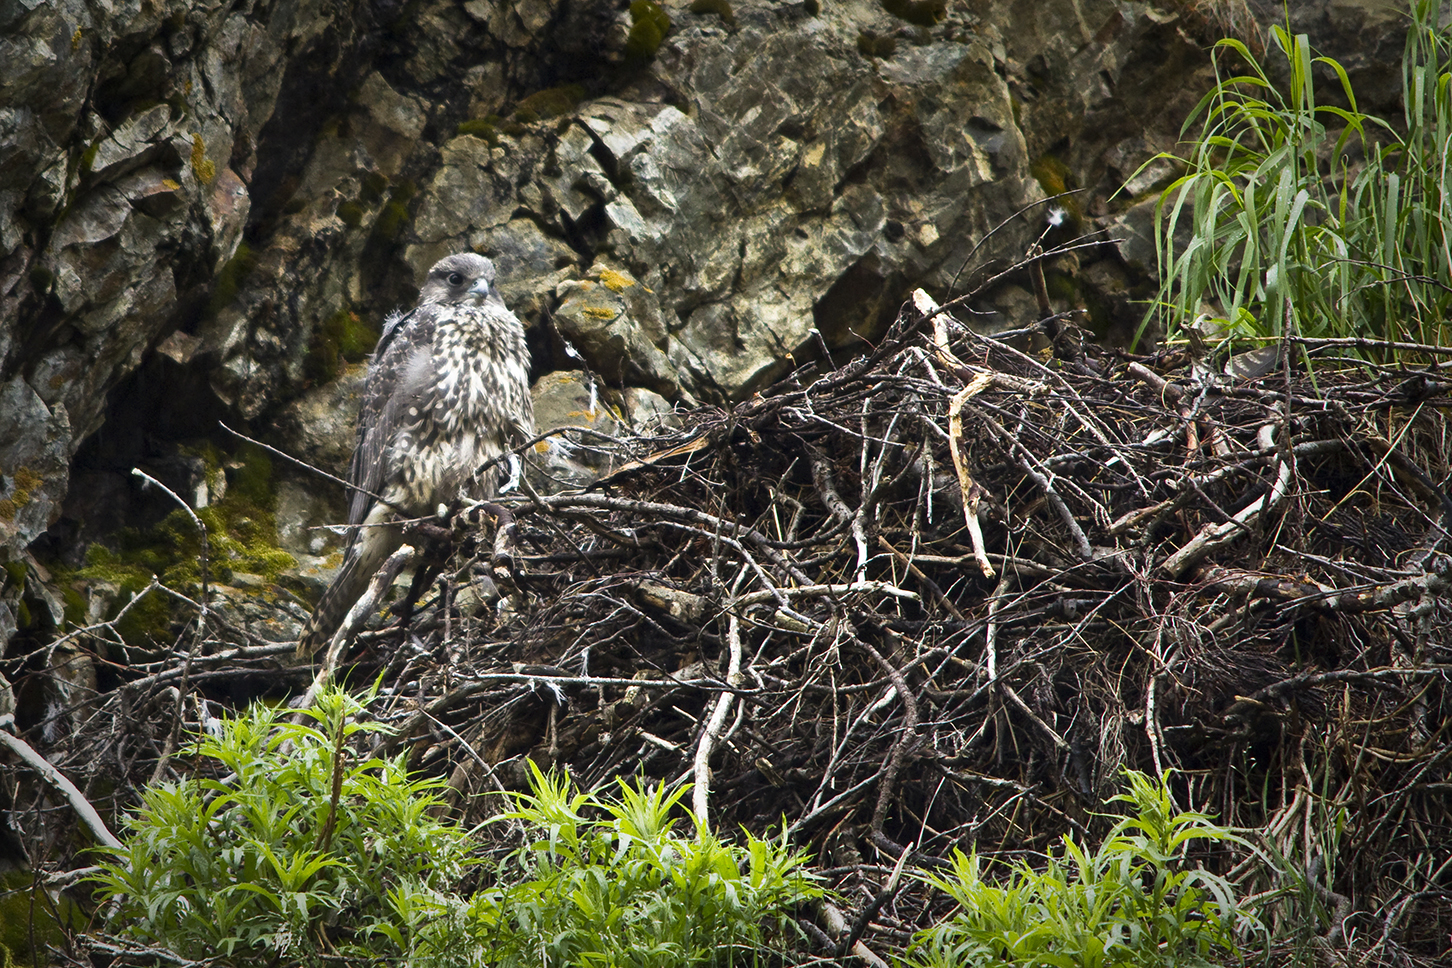 Young falcons perch in nest